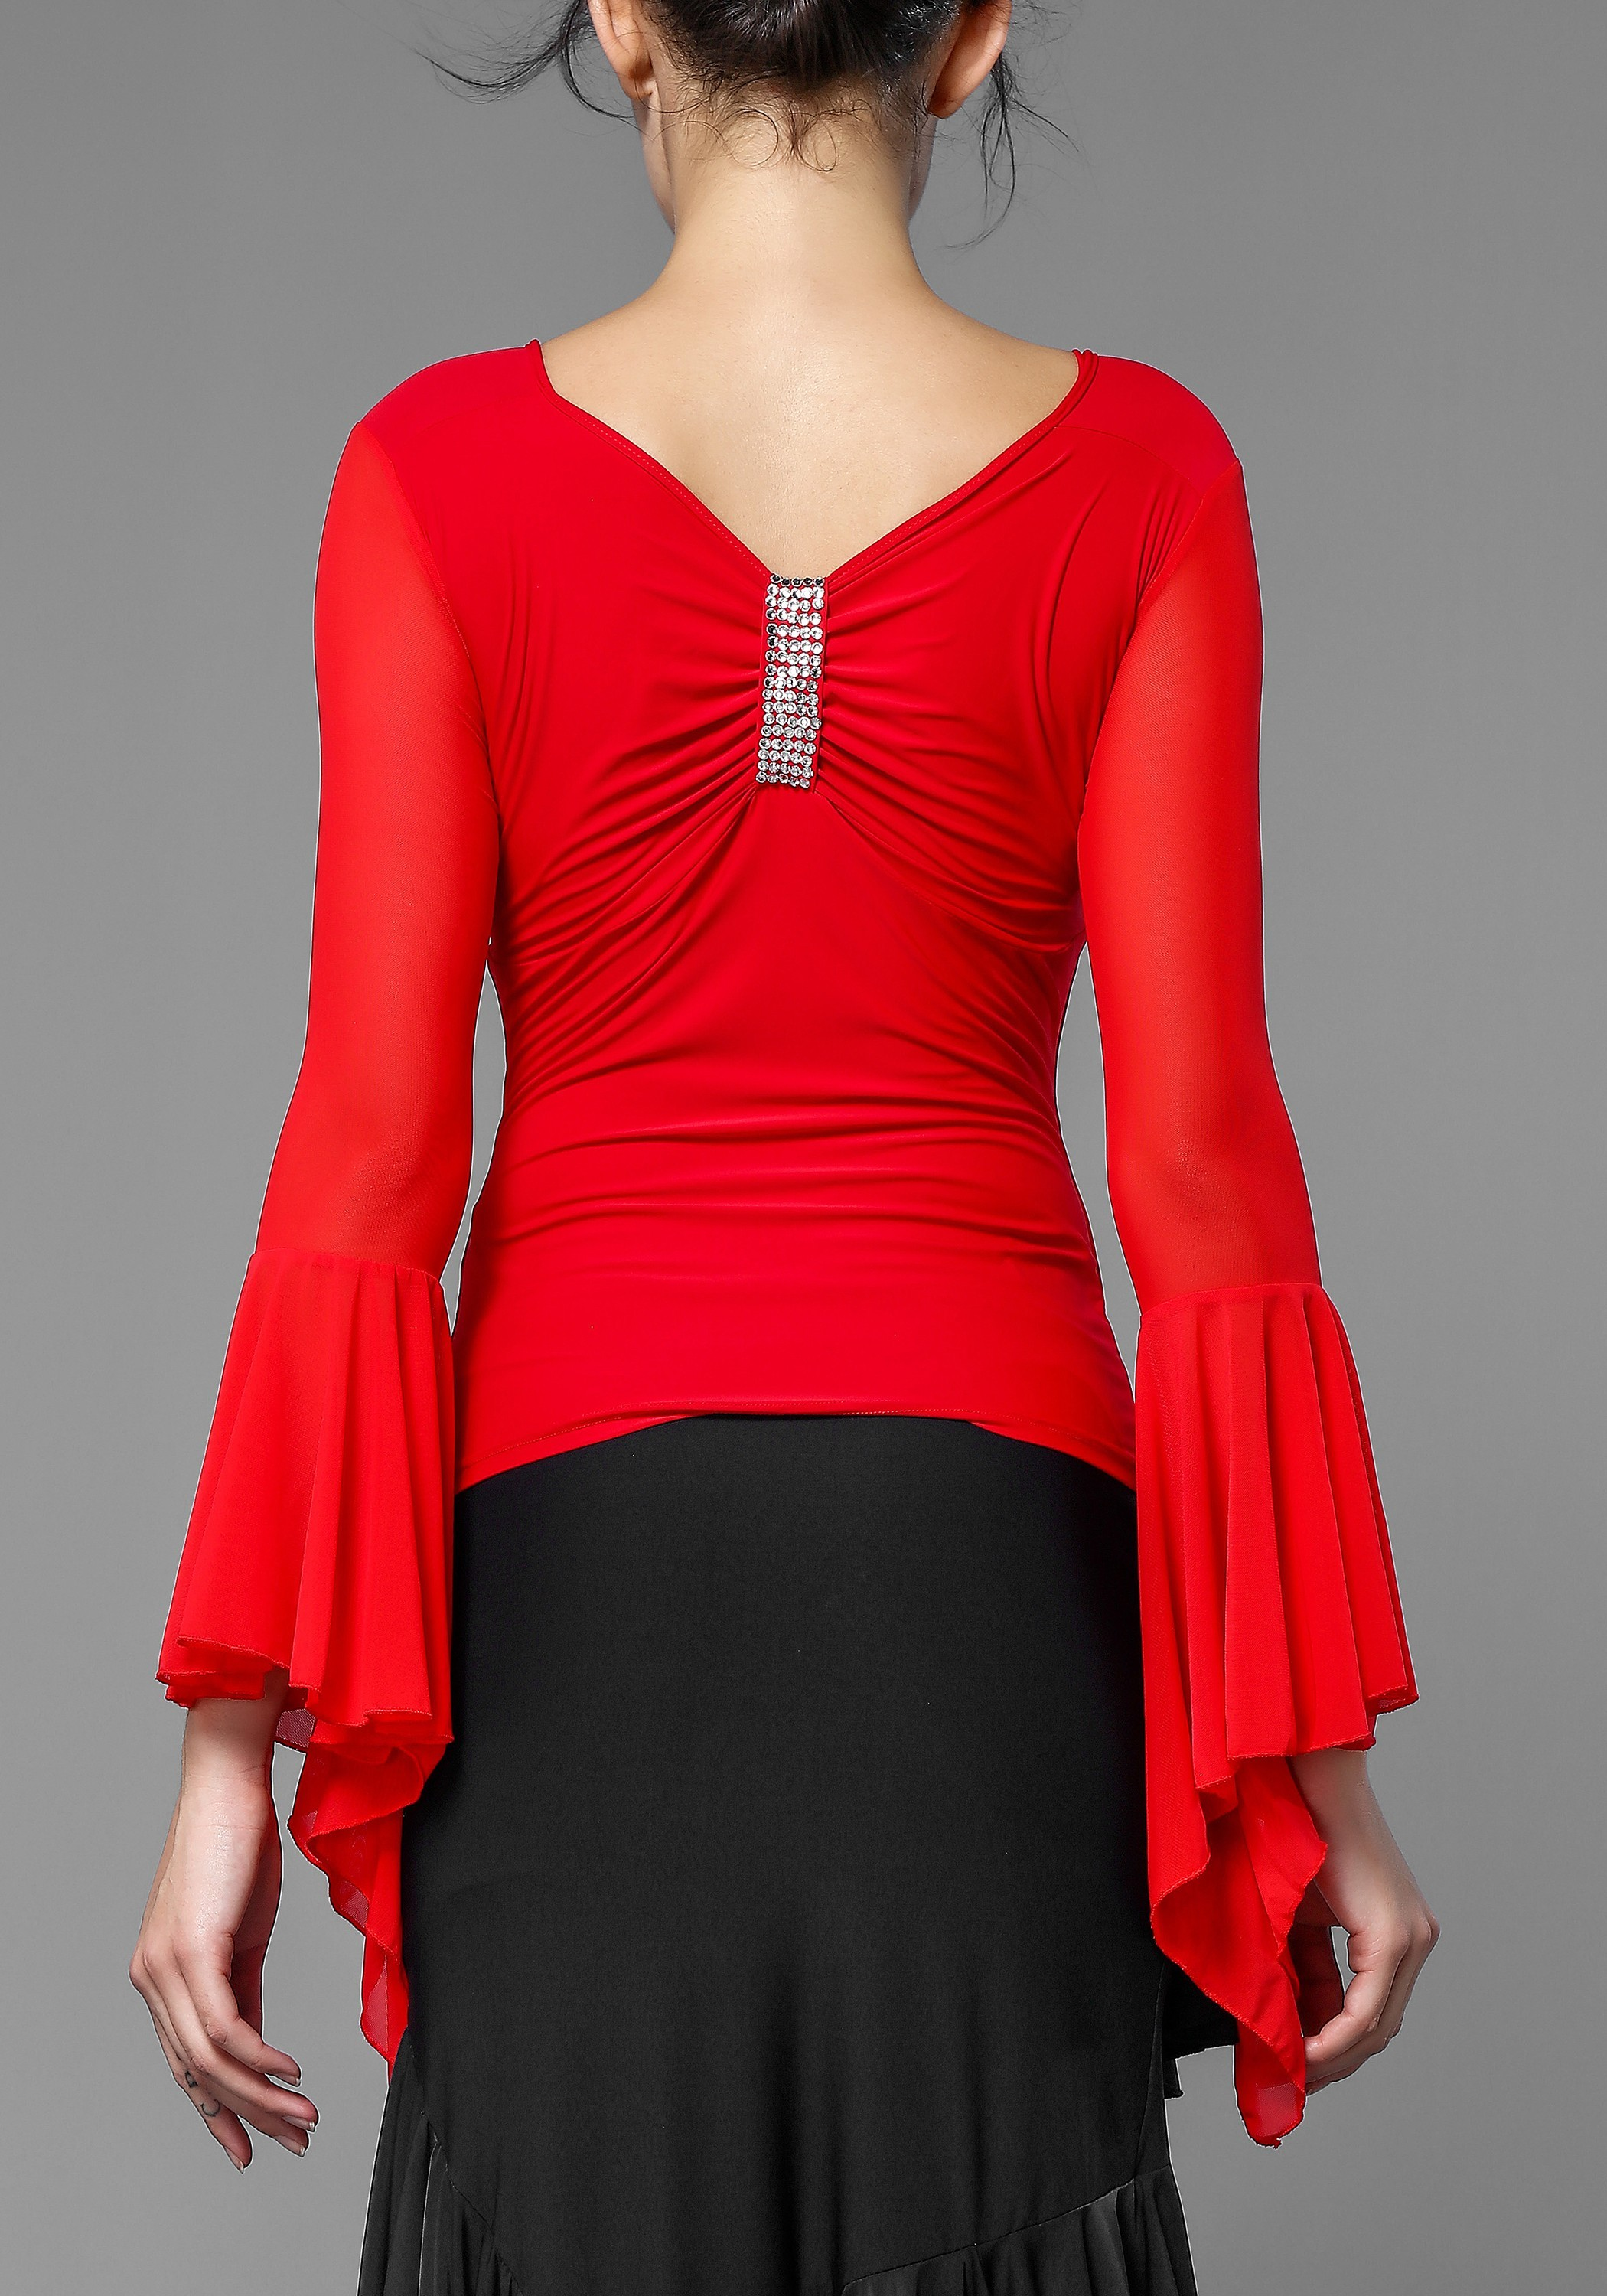 Hot Red Luxury Flare Sleeve Dance Top